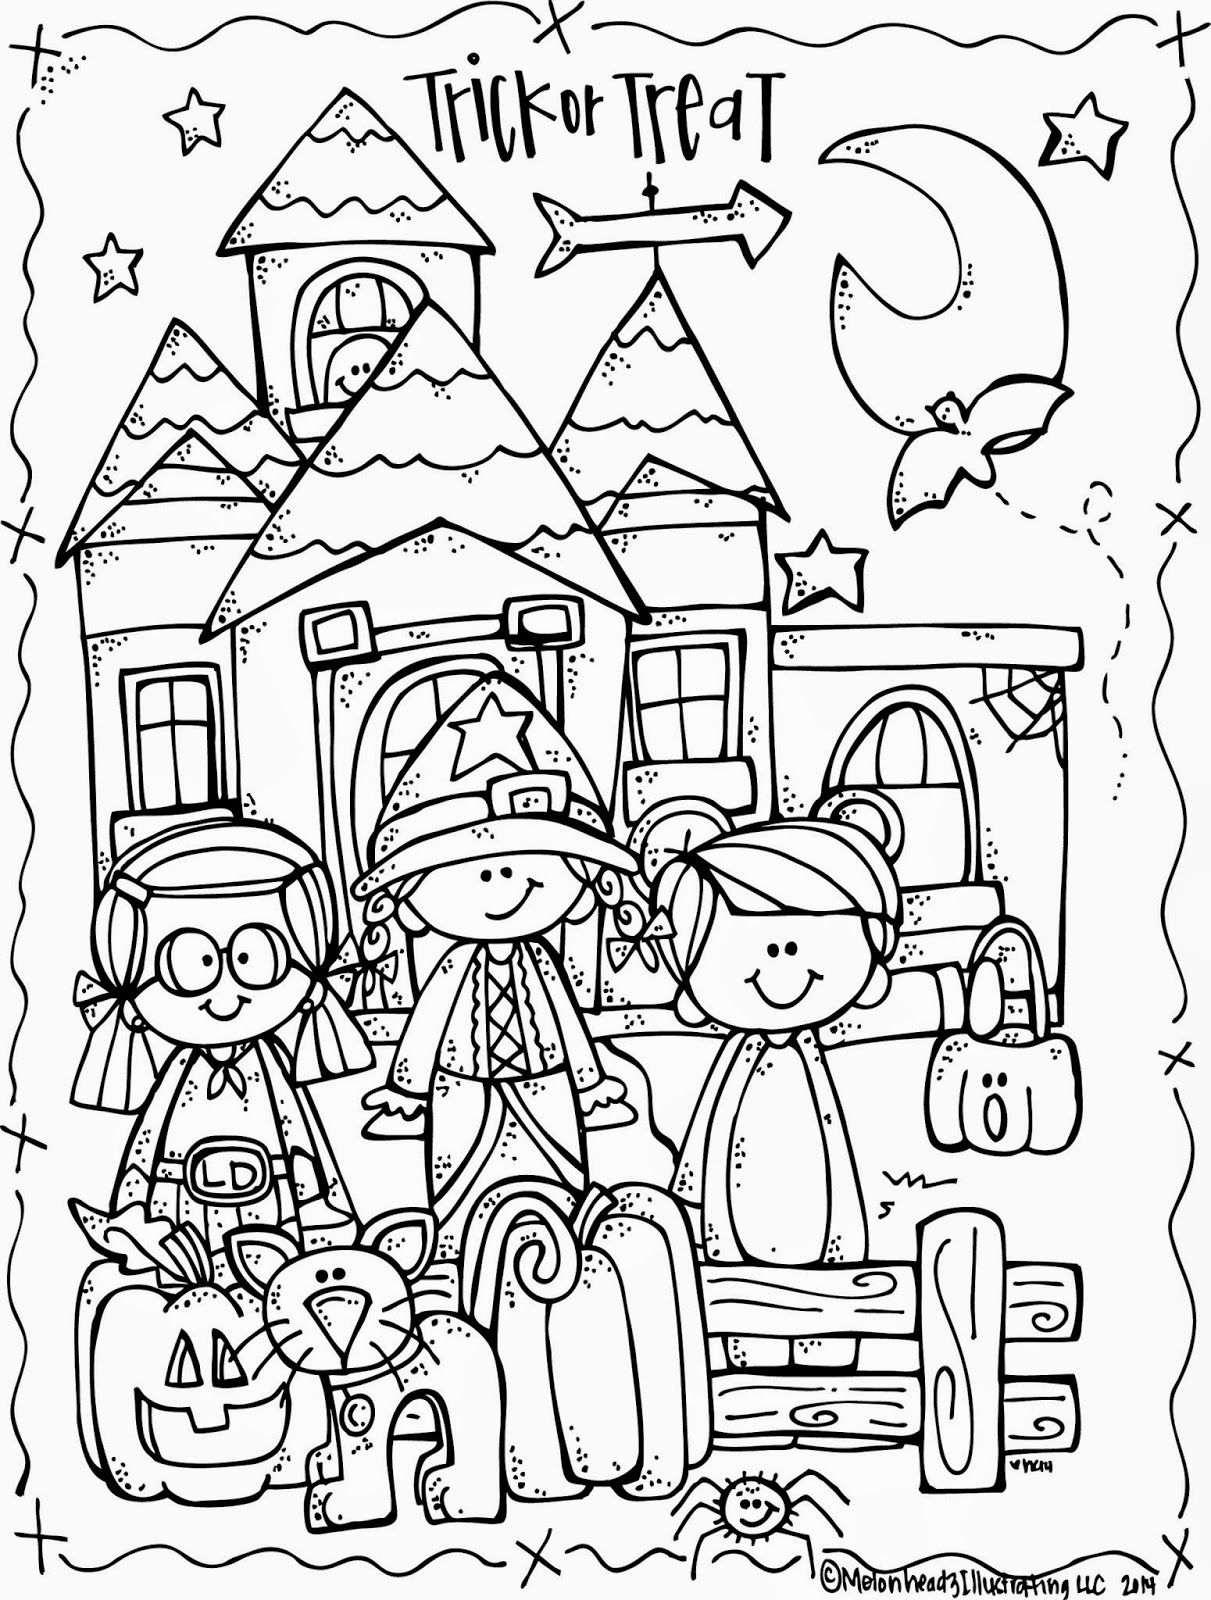 melonheadz illustrating lucy doris halloween coloring page freebie